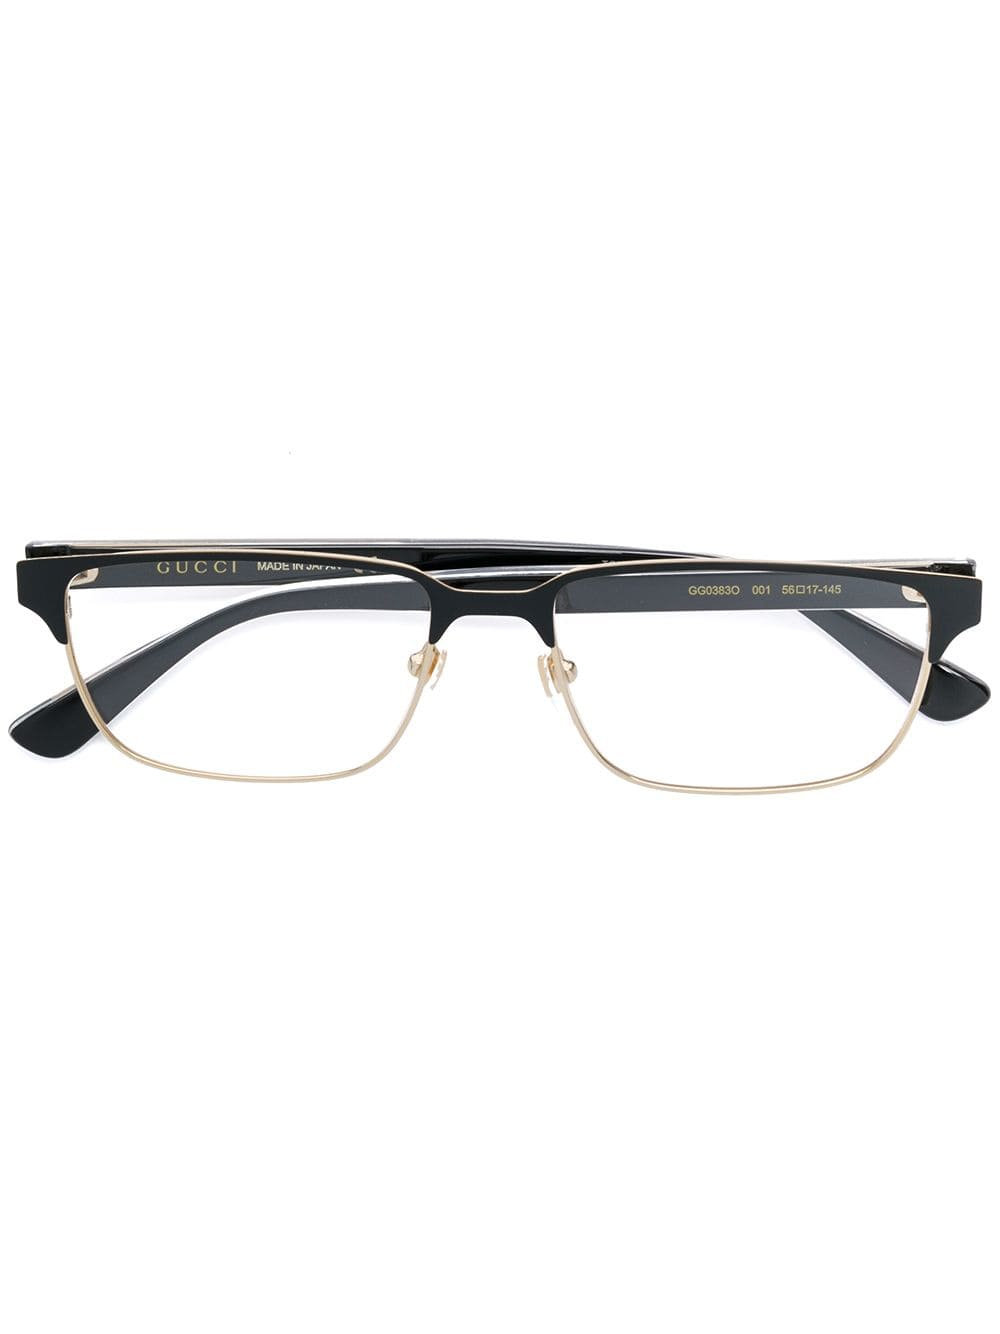 a4b0b3dc7b4 Gucci eyewear rectangular glasses black gucci jpg 1000x1334 Black gucci  frames